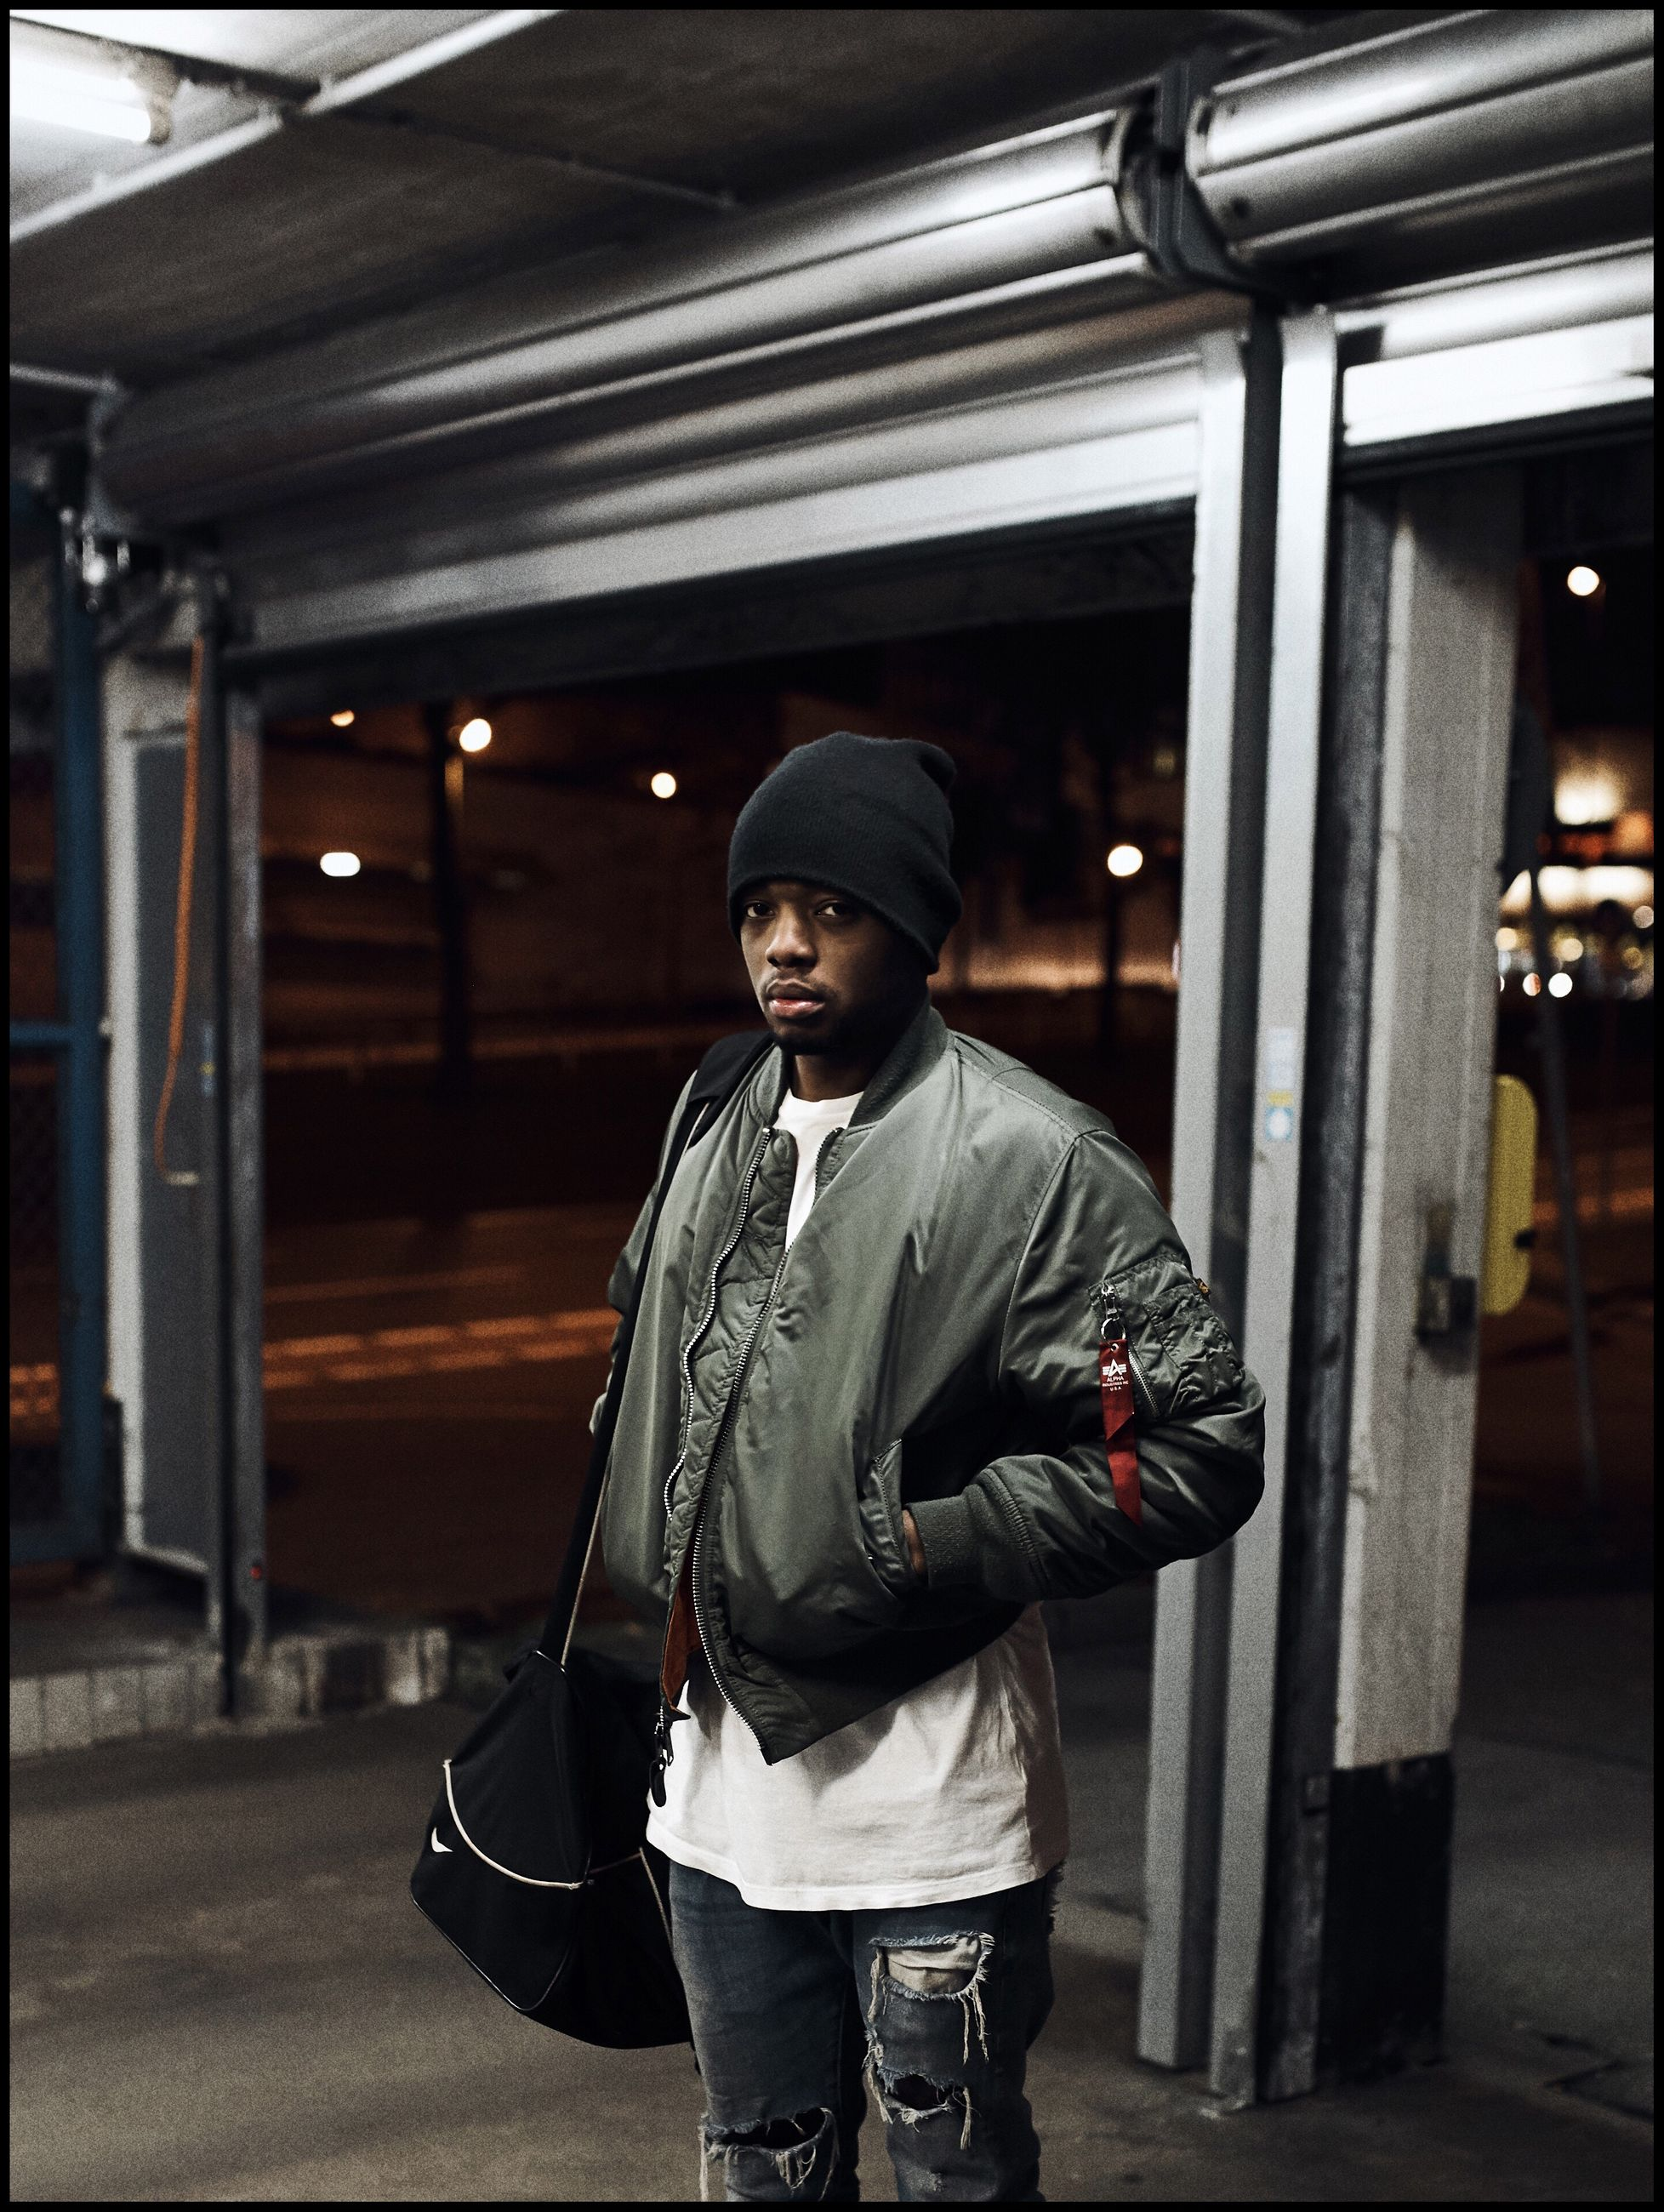 real people, one person, front view, lifestyles, young adult, leisure activity, jacket, young men, casual clothing, standing, full length, hooded shirt, men, outdoors, illuminated, night, warm clothing, people